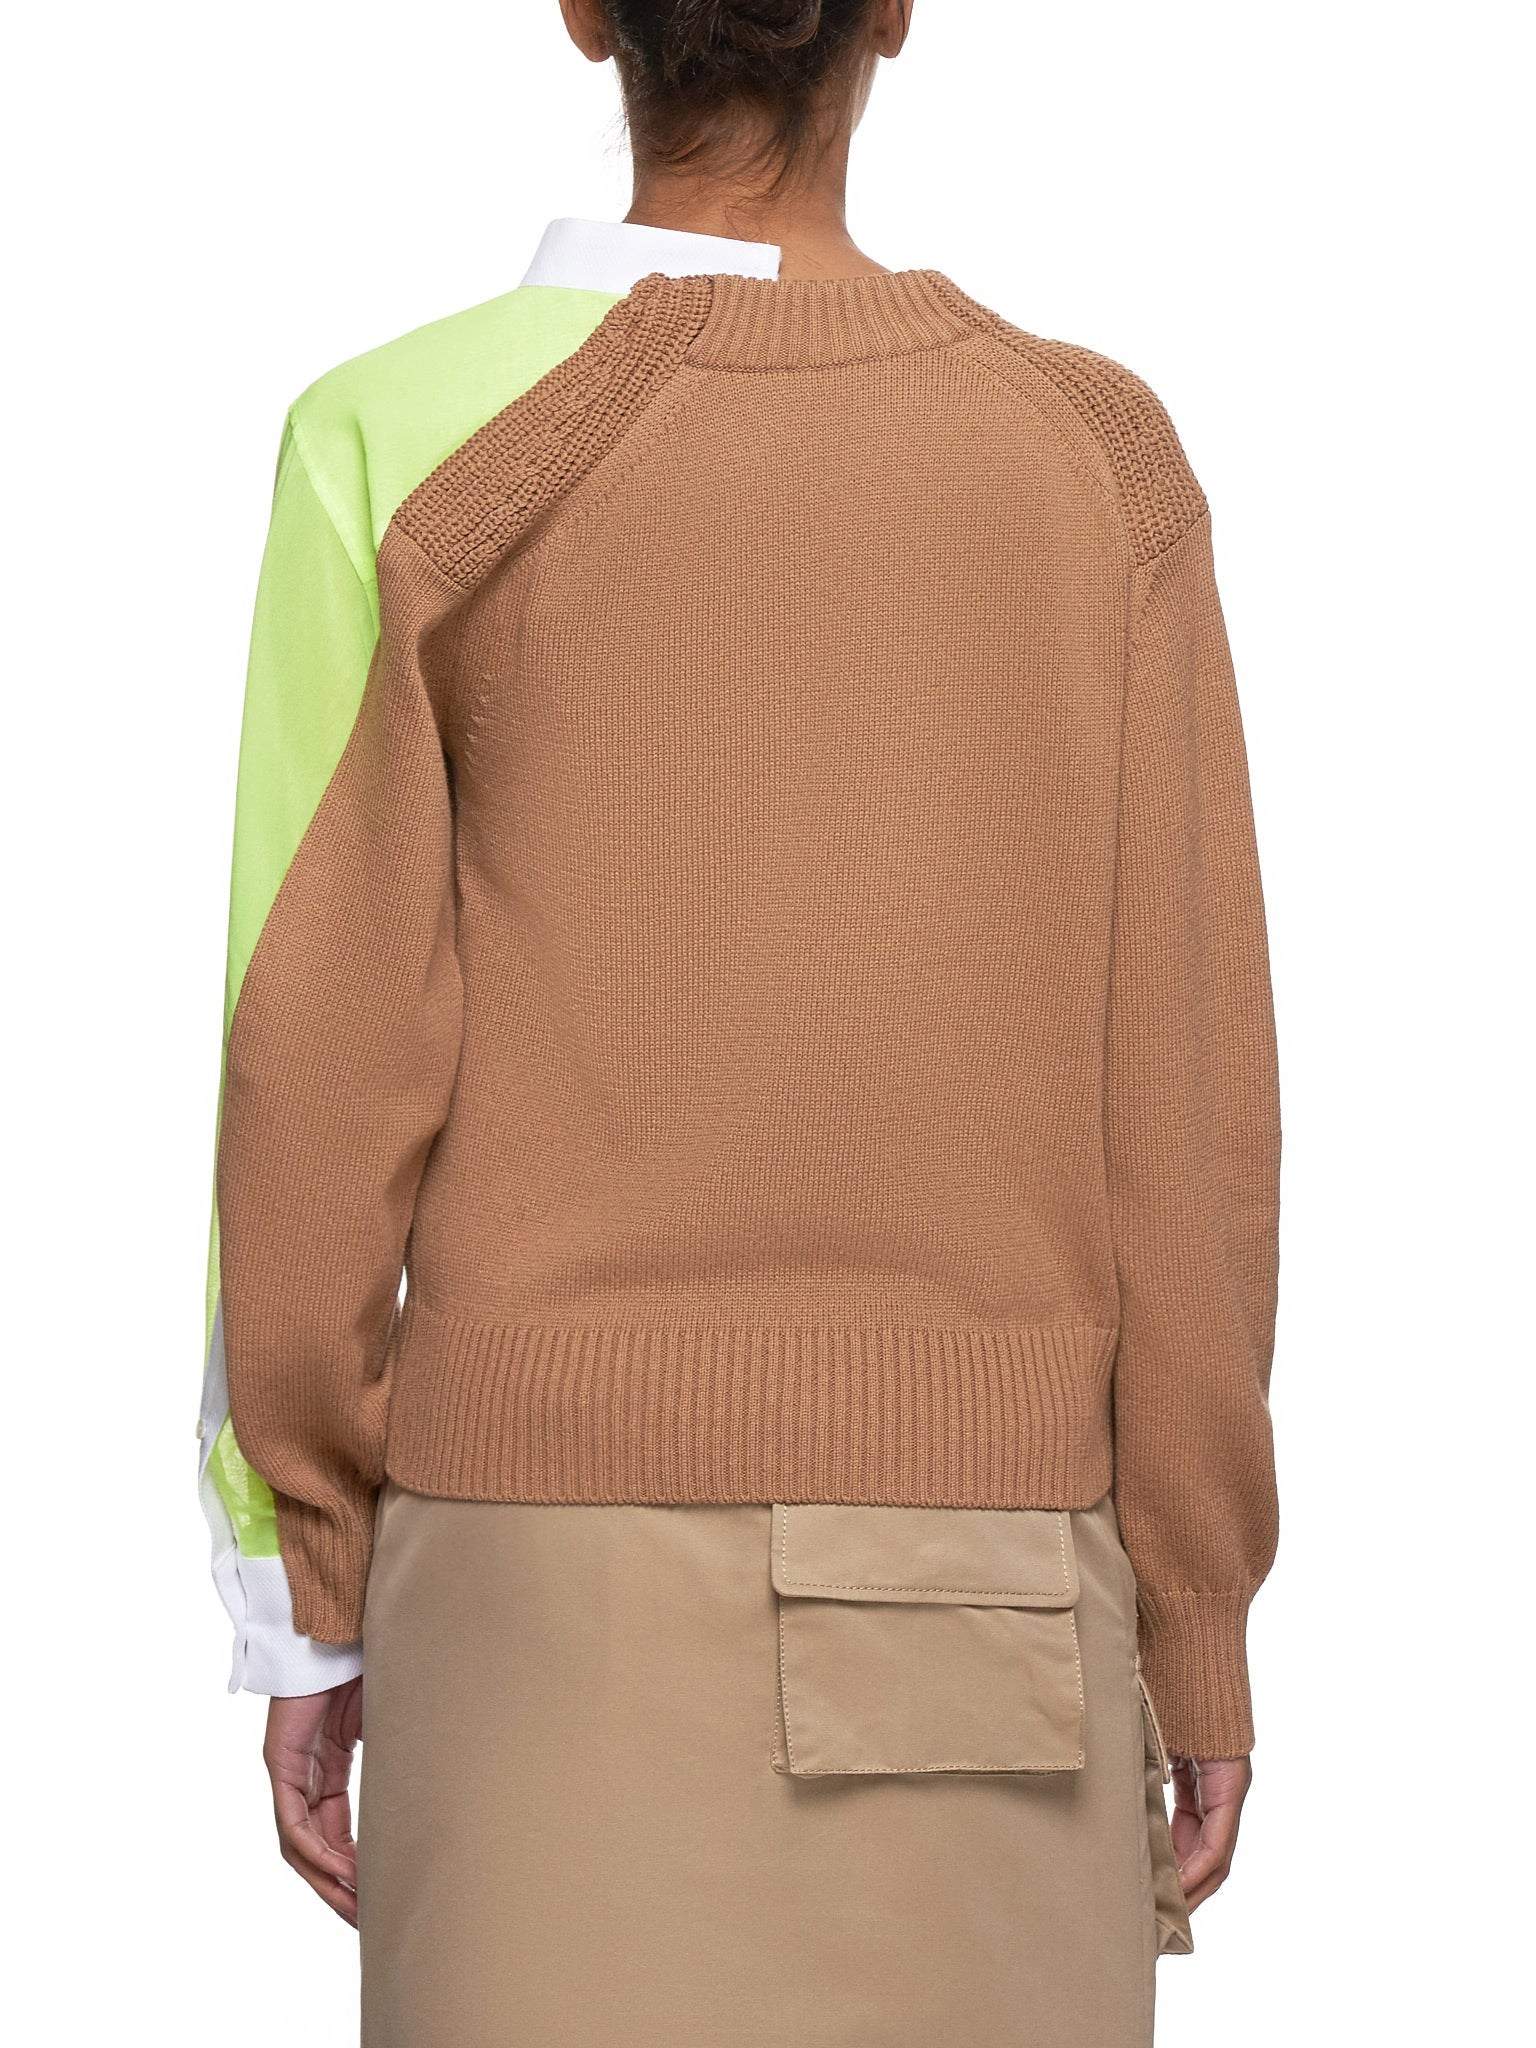 Sacai Sweater - Hlorenzo Back